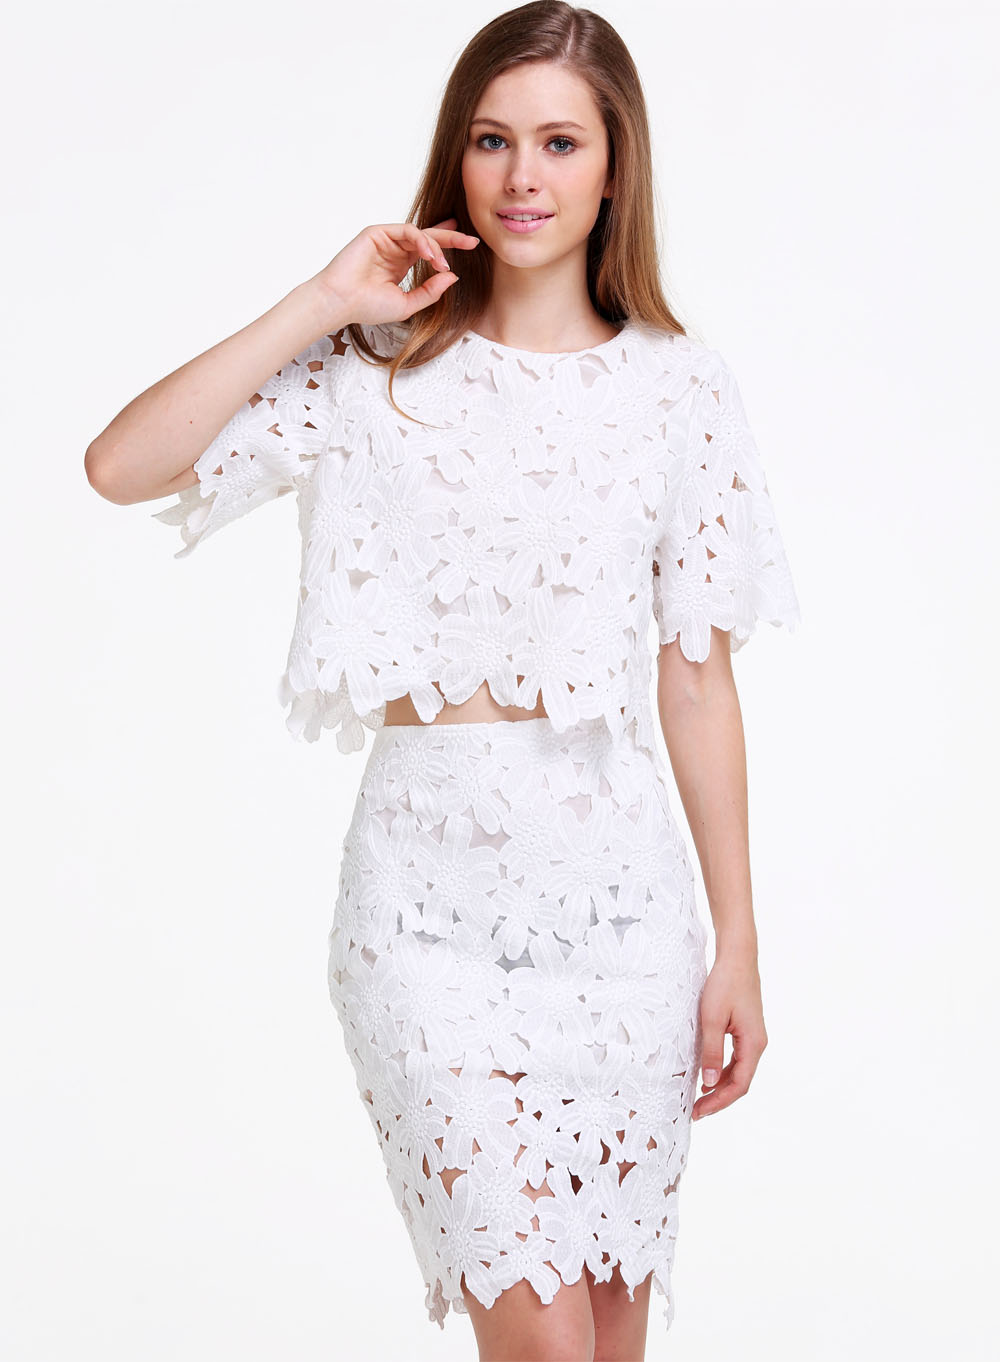 White Short Sleeve Crochet Crop T-shirt - Sheinside.com